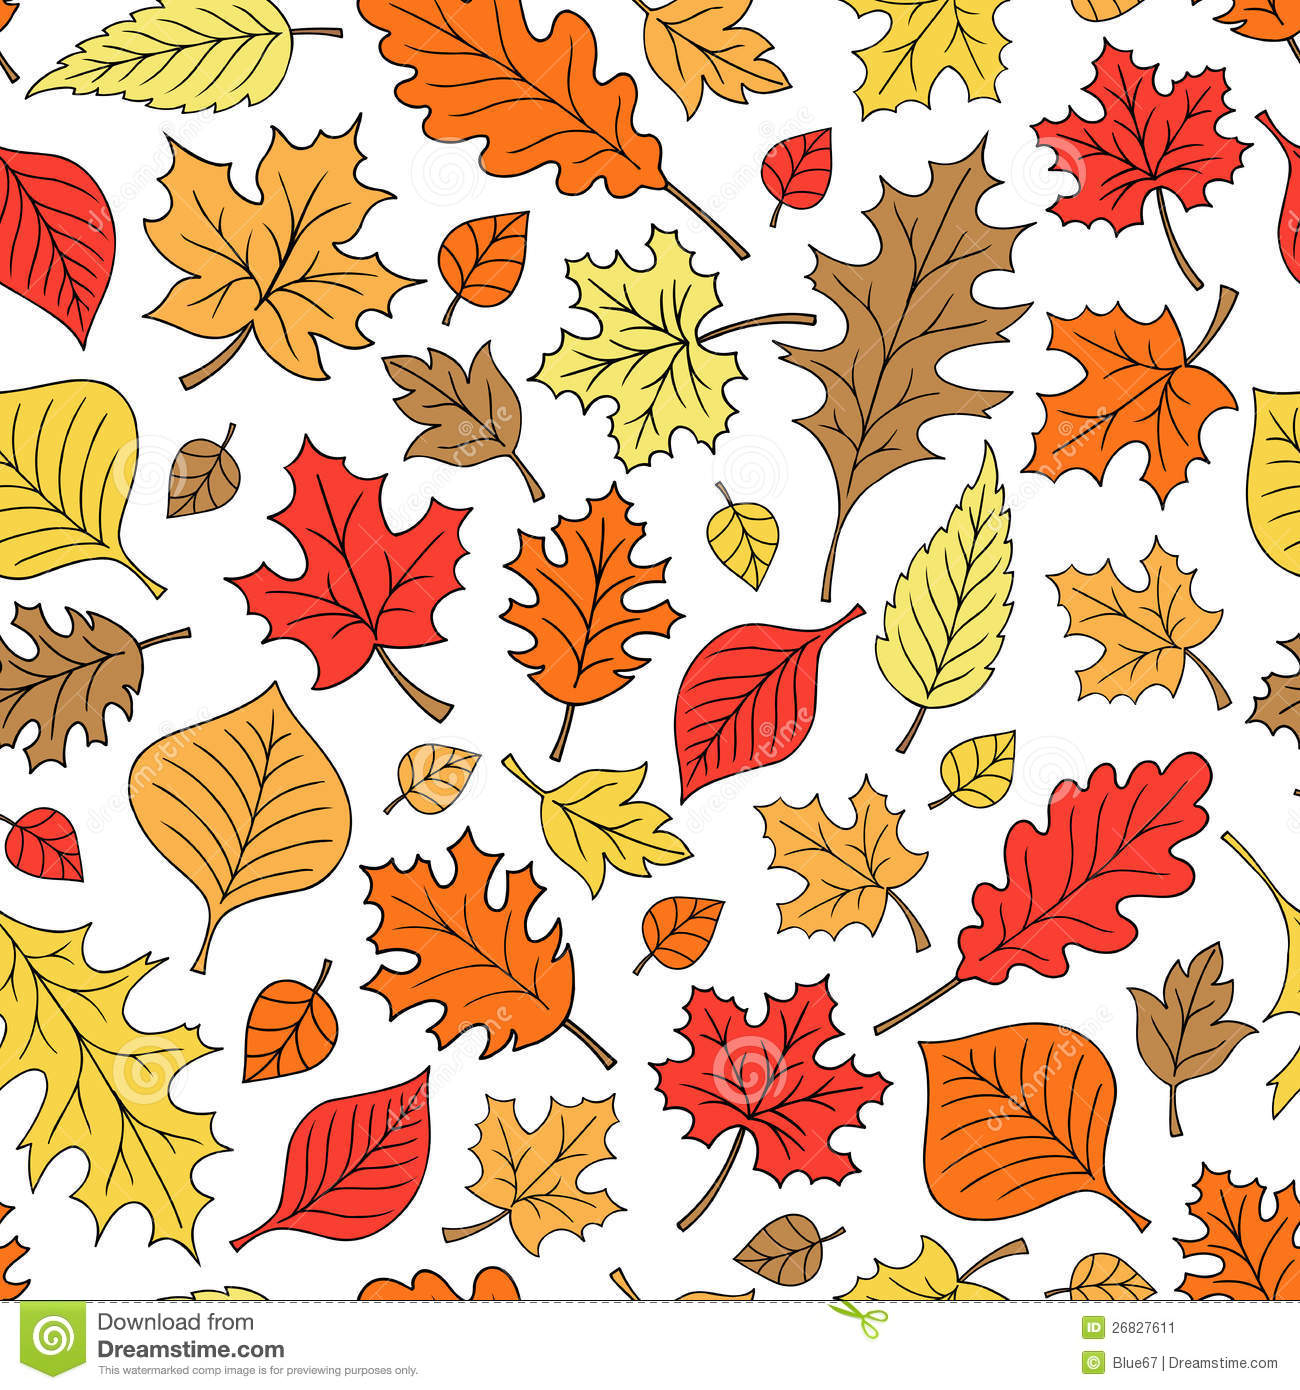 Free Fall Wallpaper For Iphone Seamless Autumn Fall Leaves Pattern Vector Stock Vector